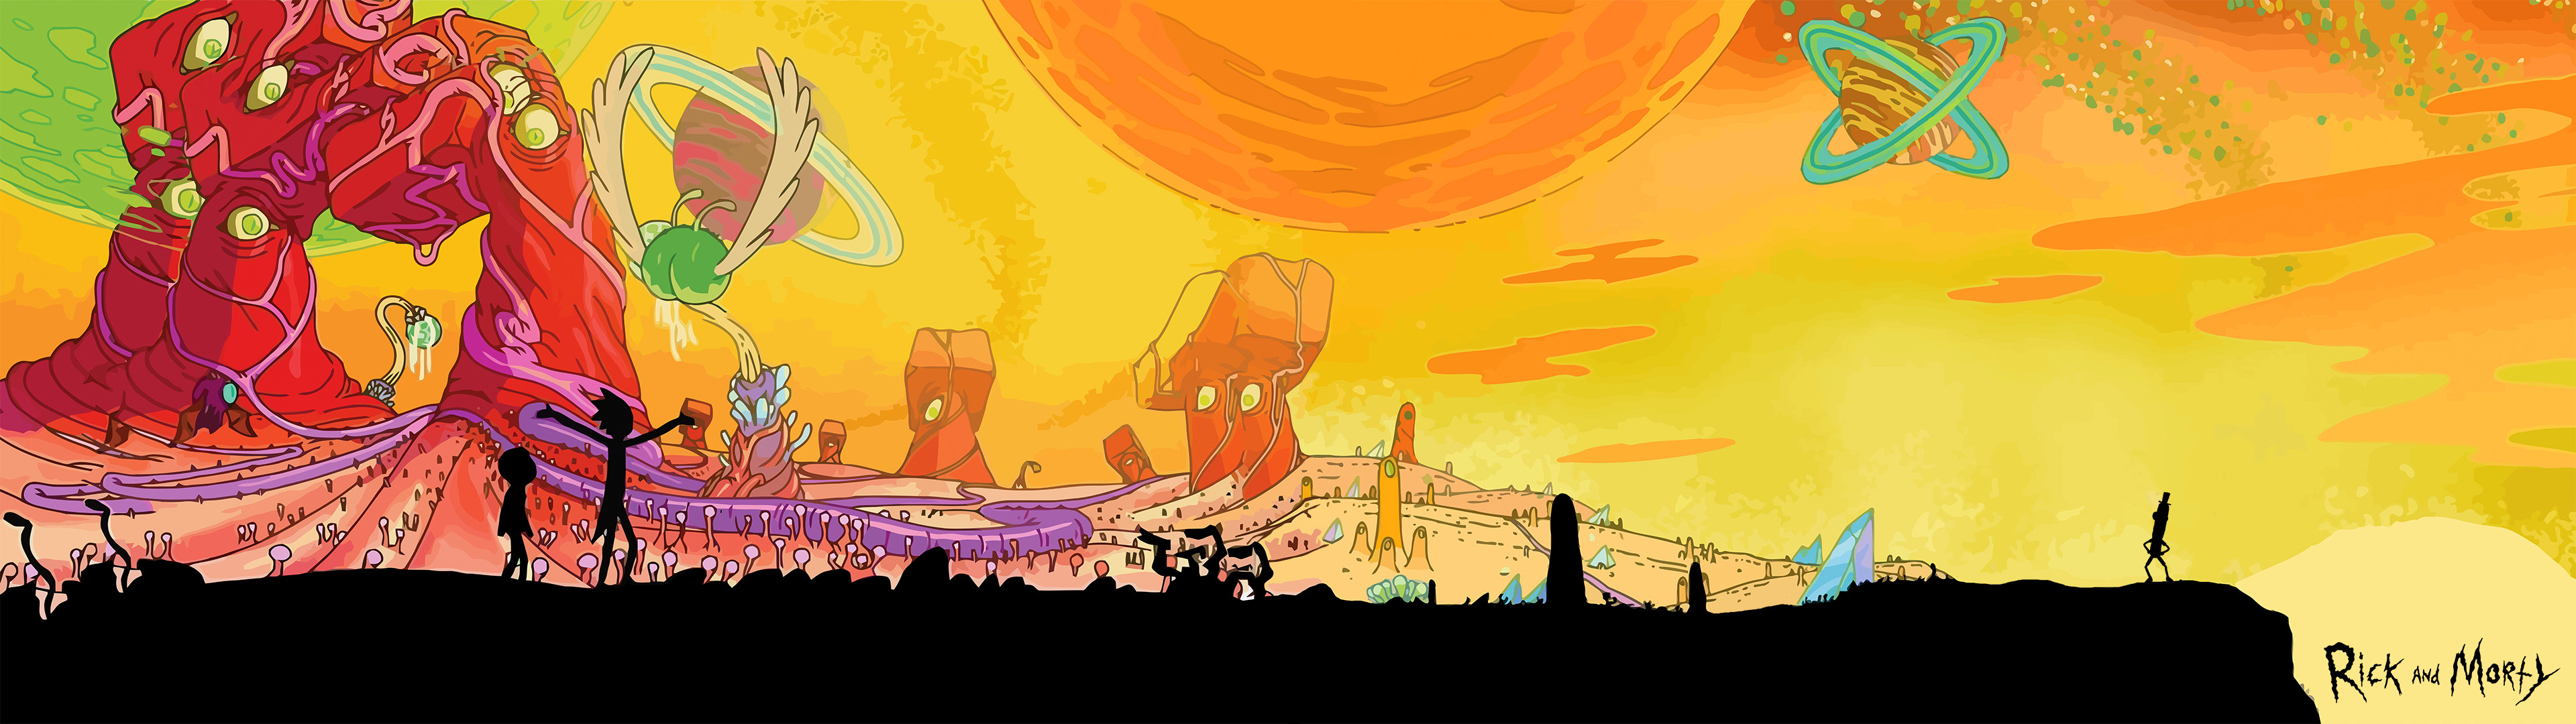 3840x1080 []Rick and Morty Dual Screen wallpaperDual ...